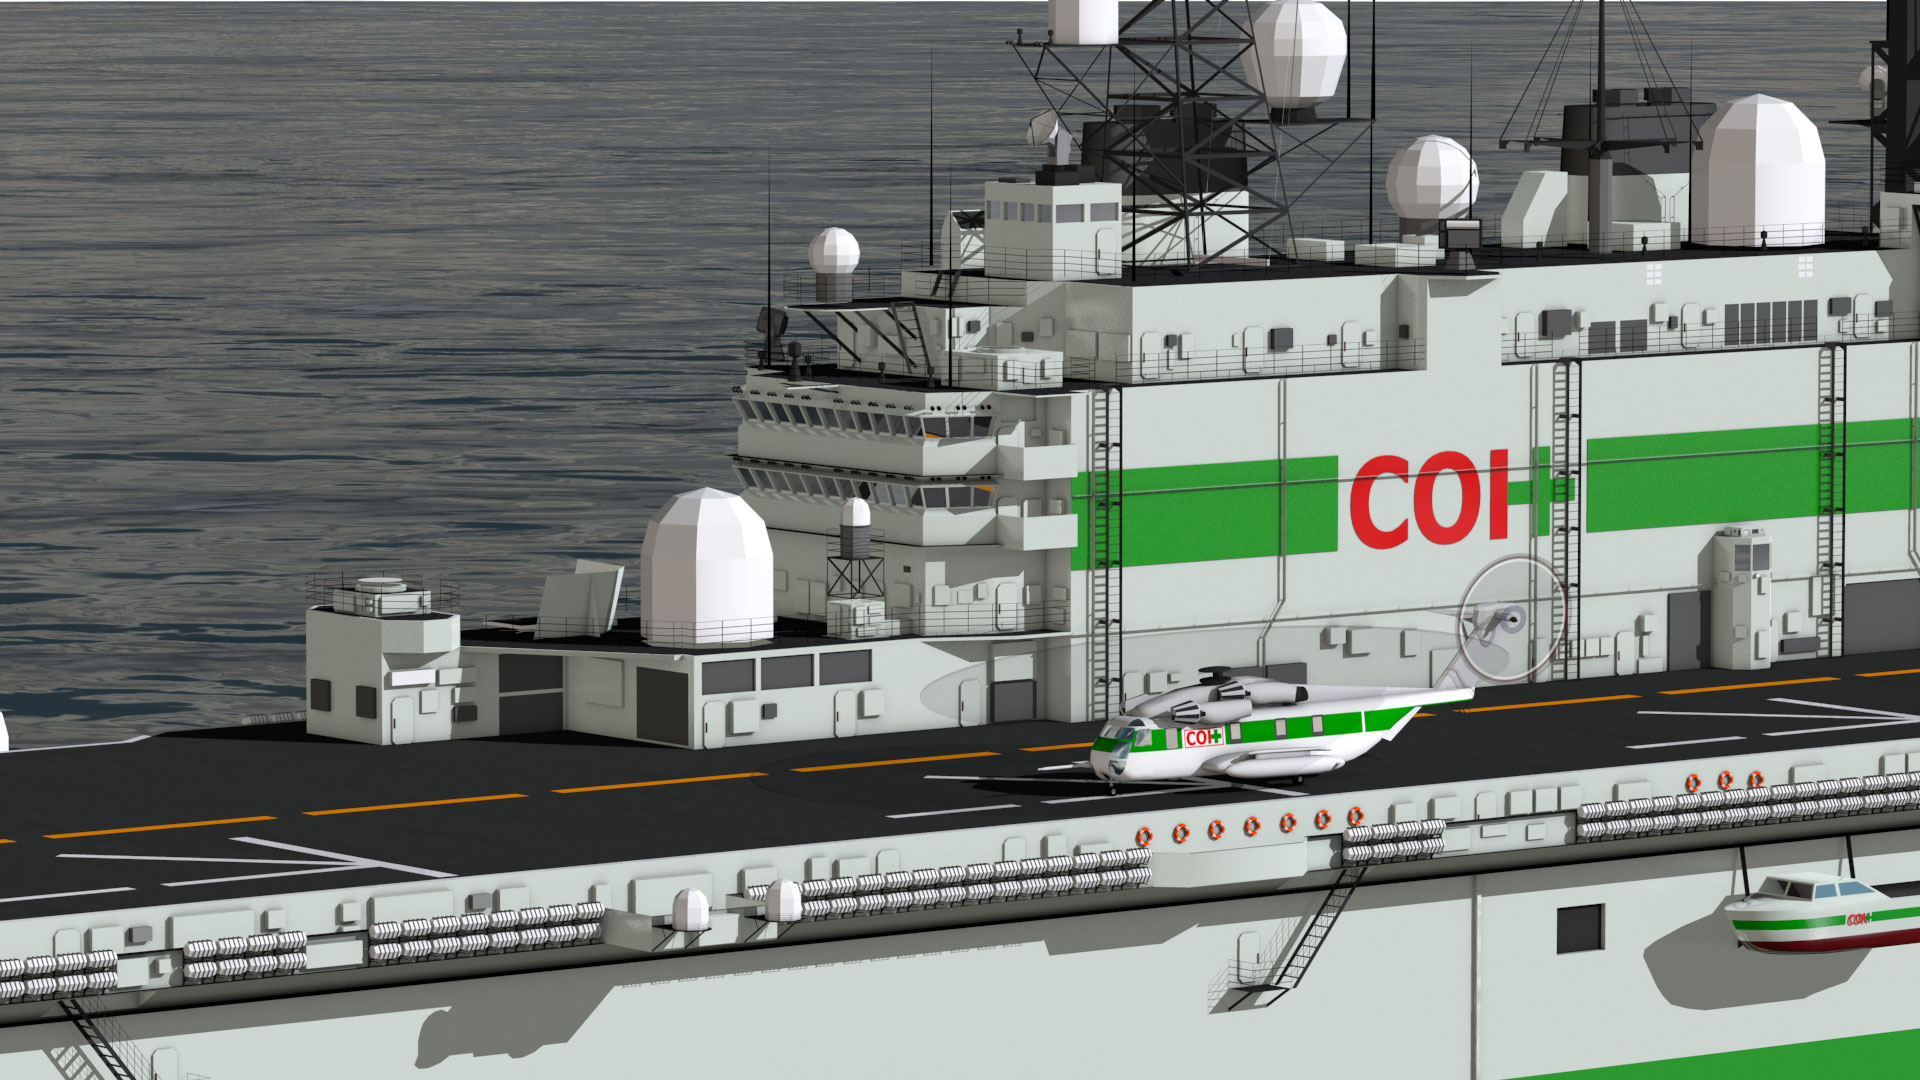 Rendering of the USS Nassau back in commission